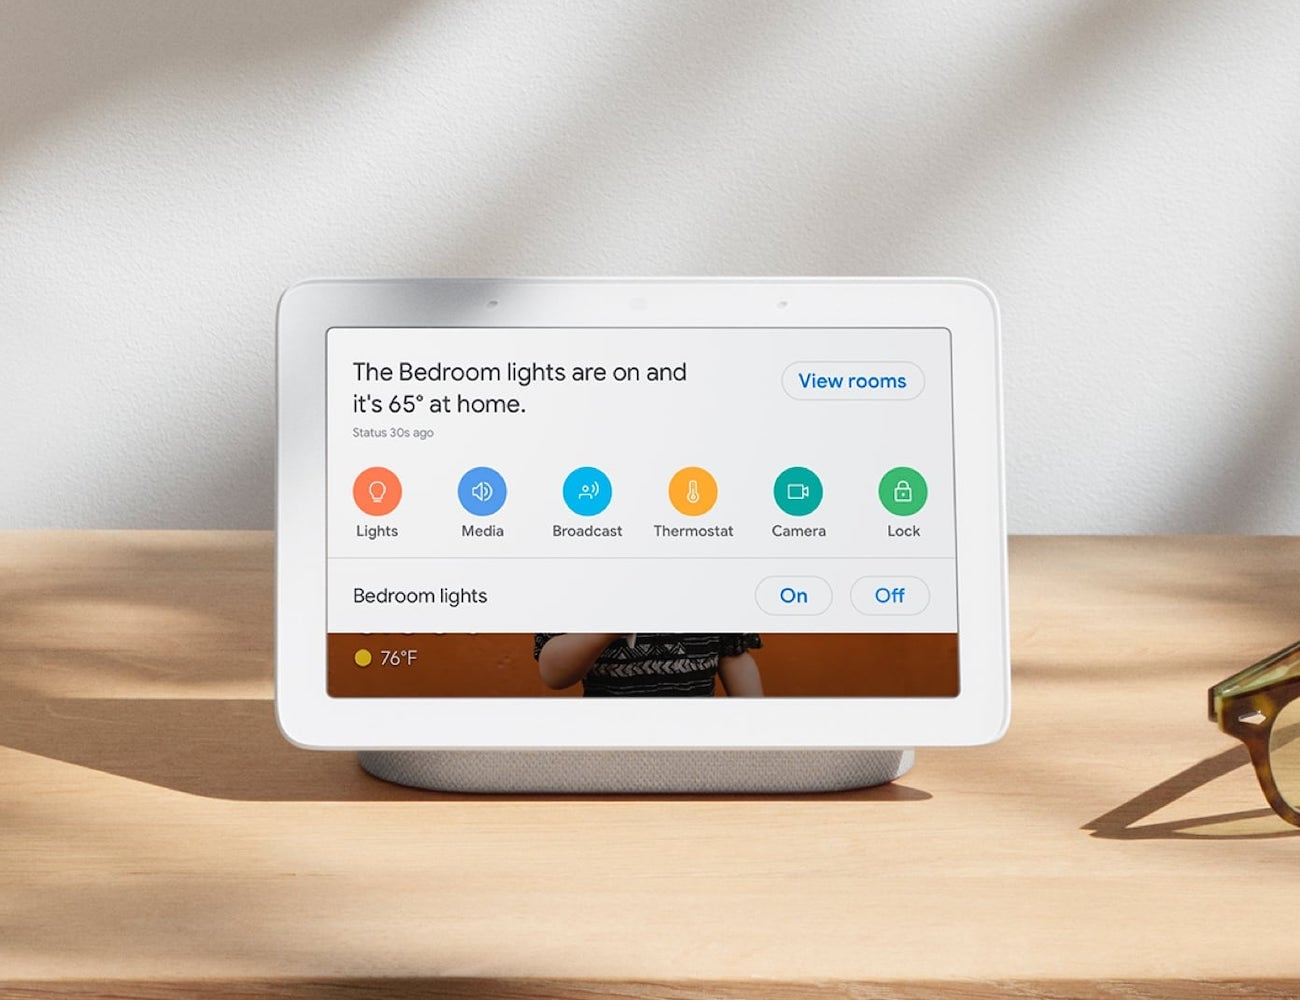 Nest Hub Smart Display gives you access to all your smart devices